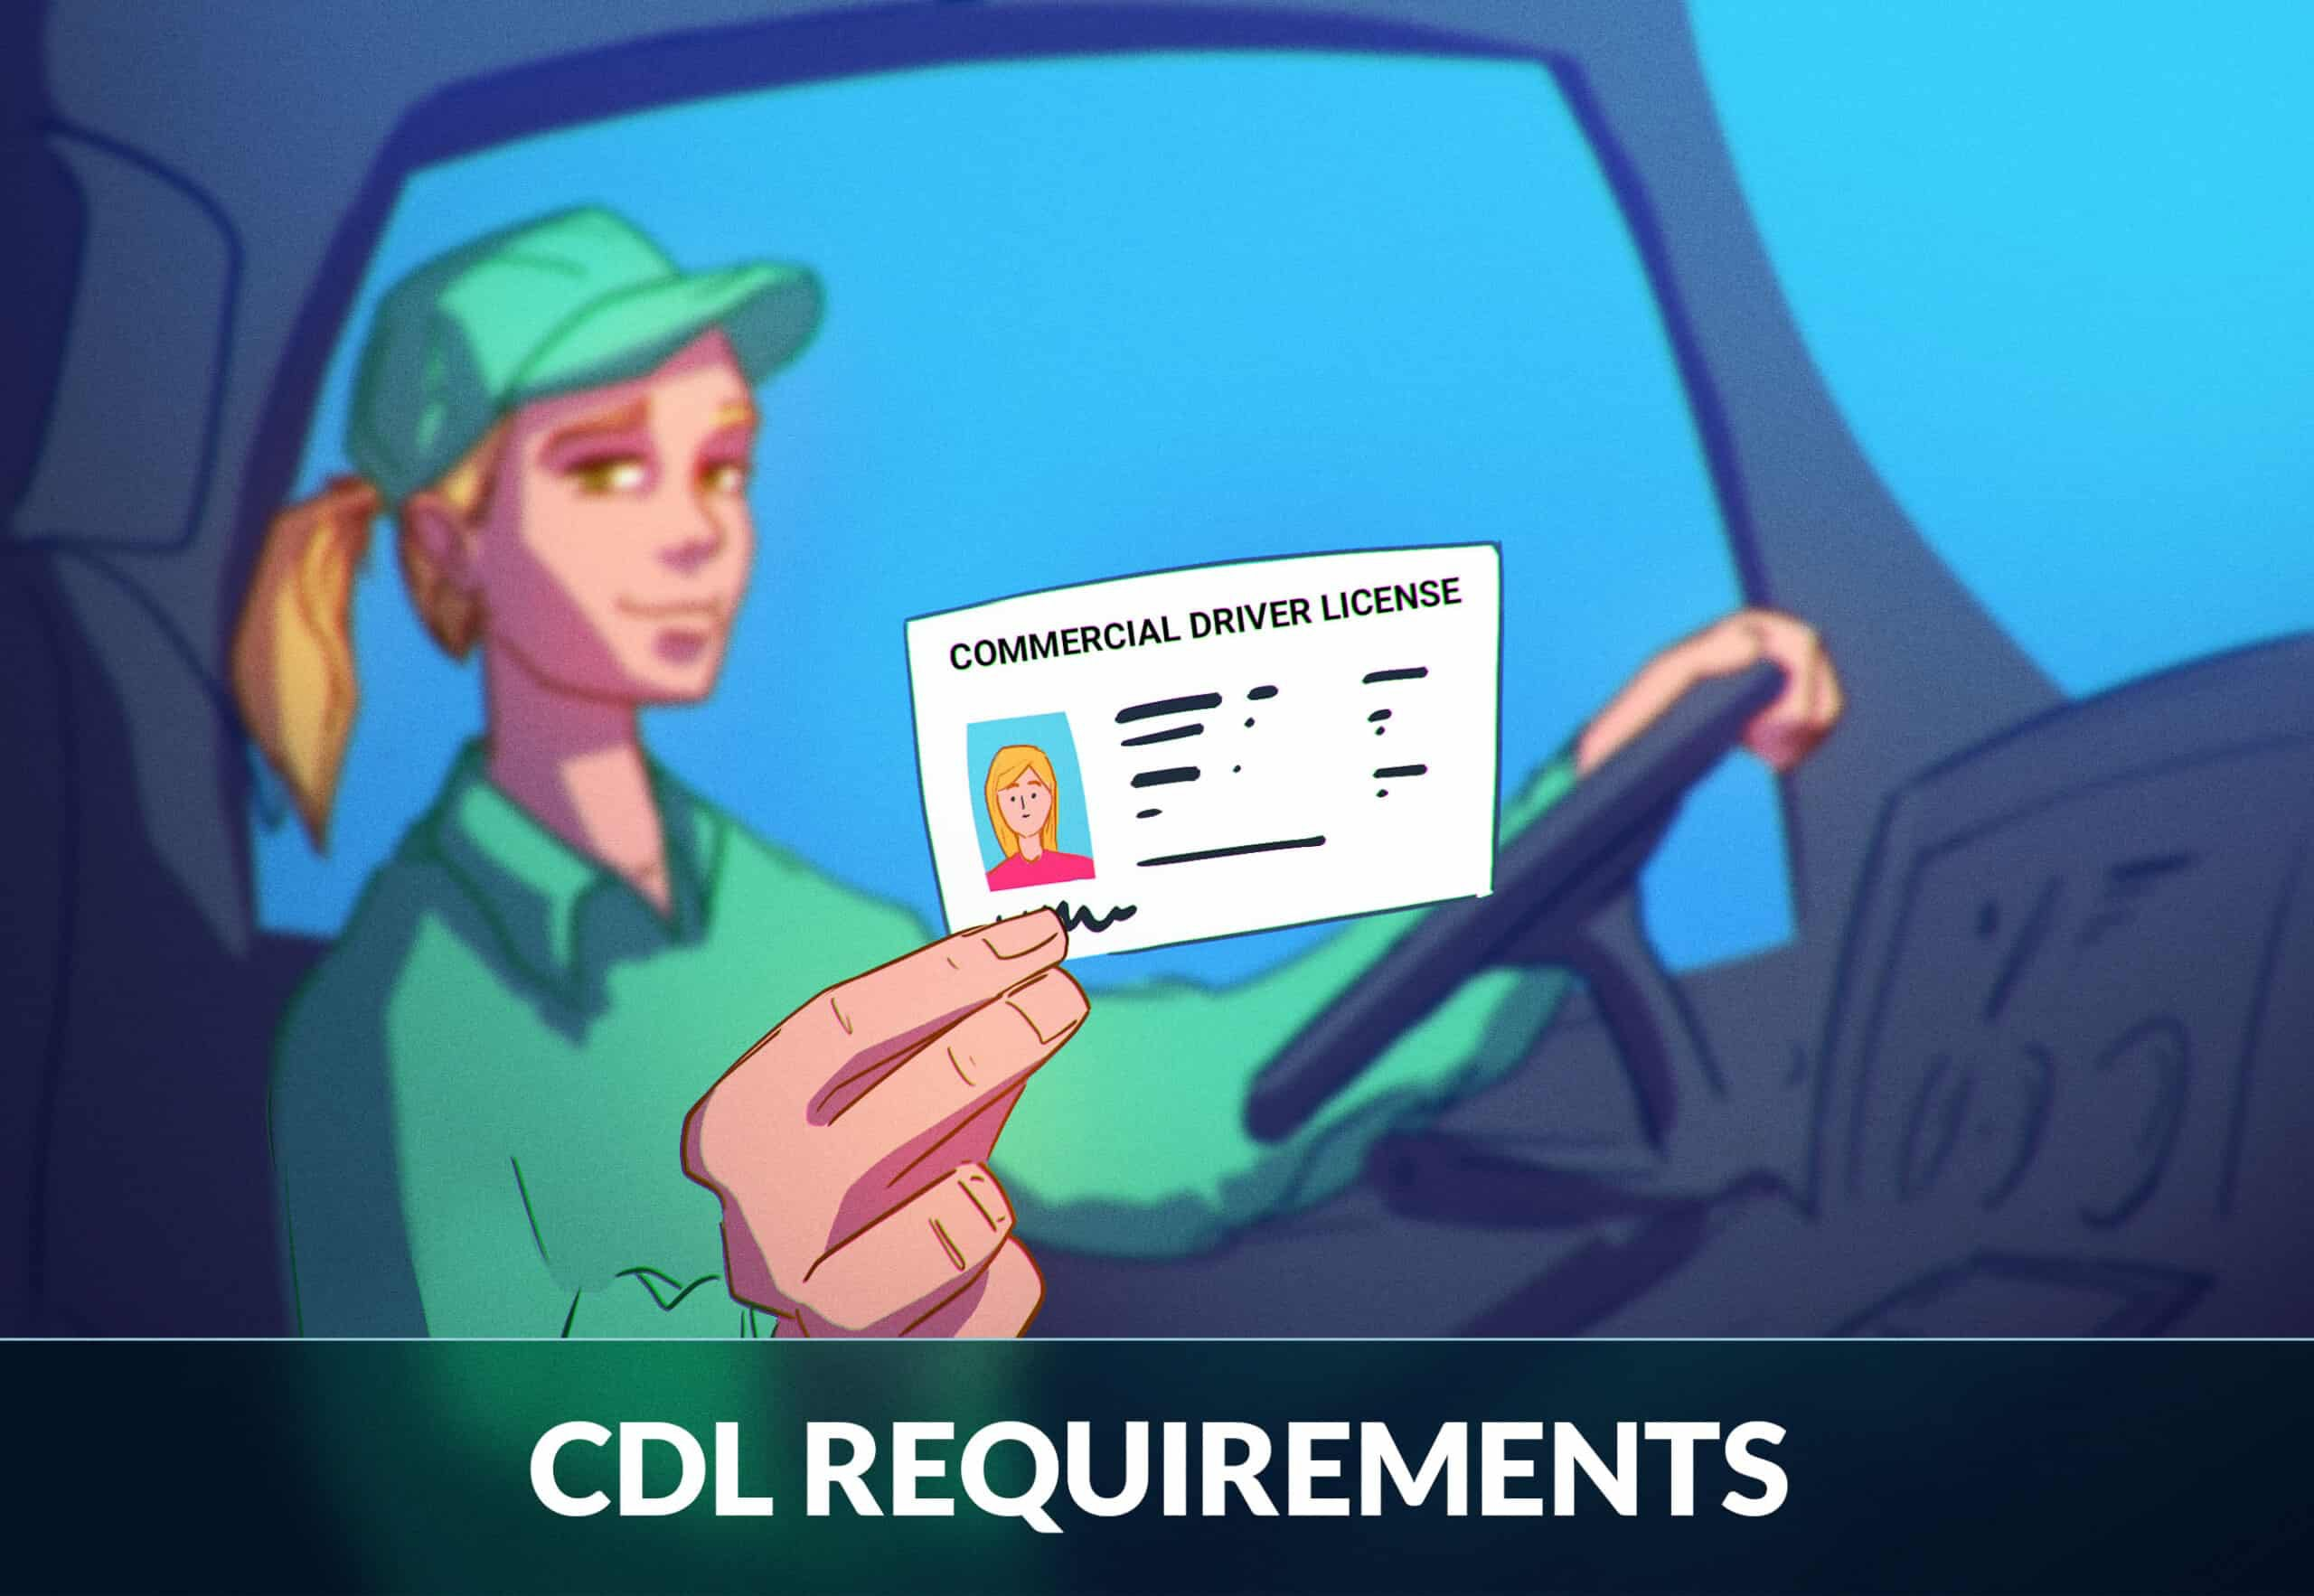 CDL Requirements